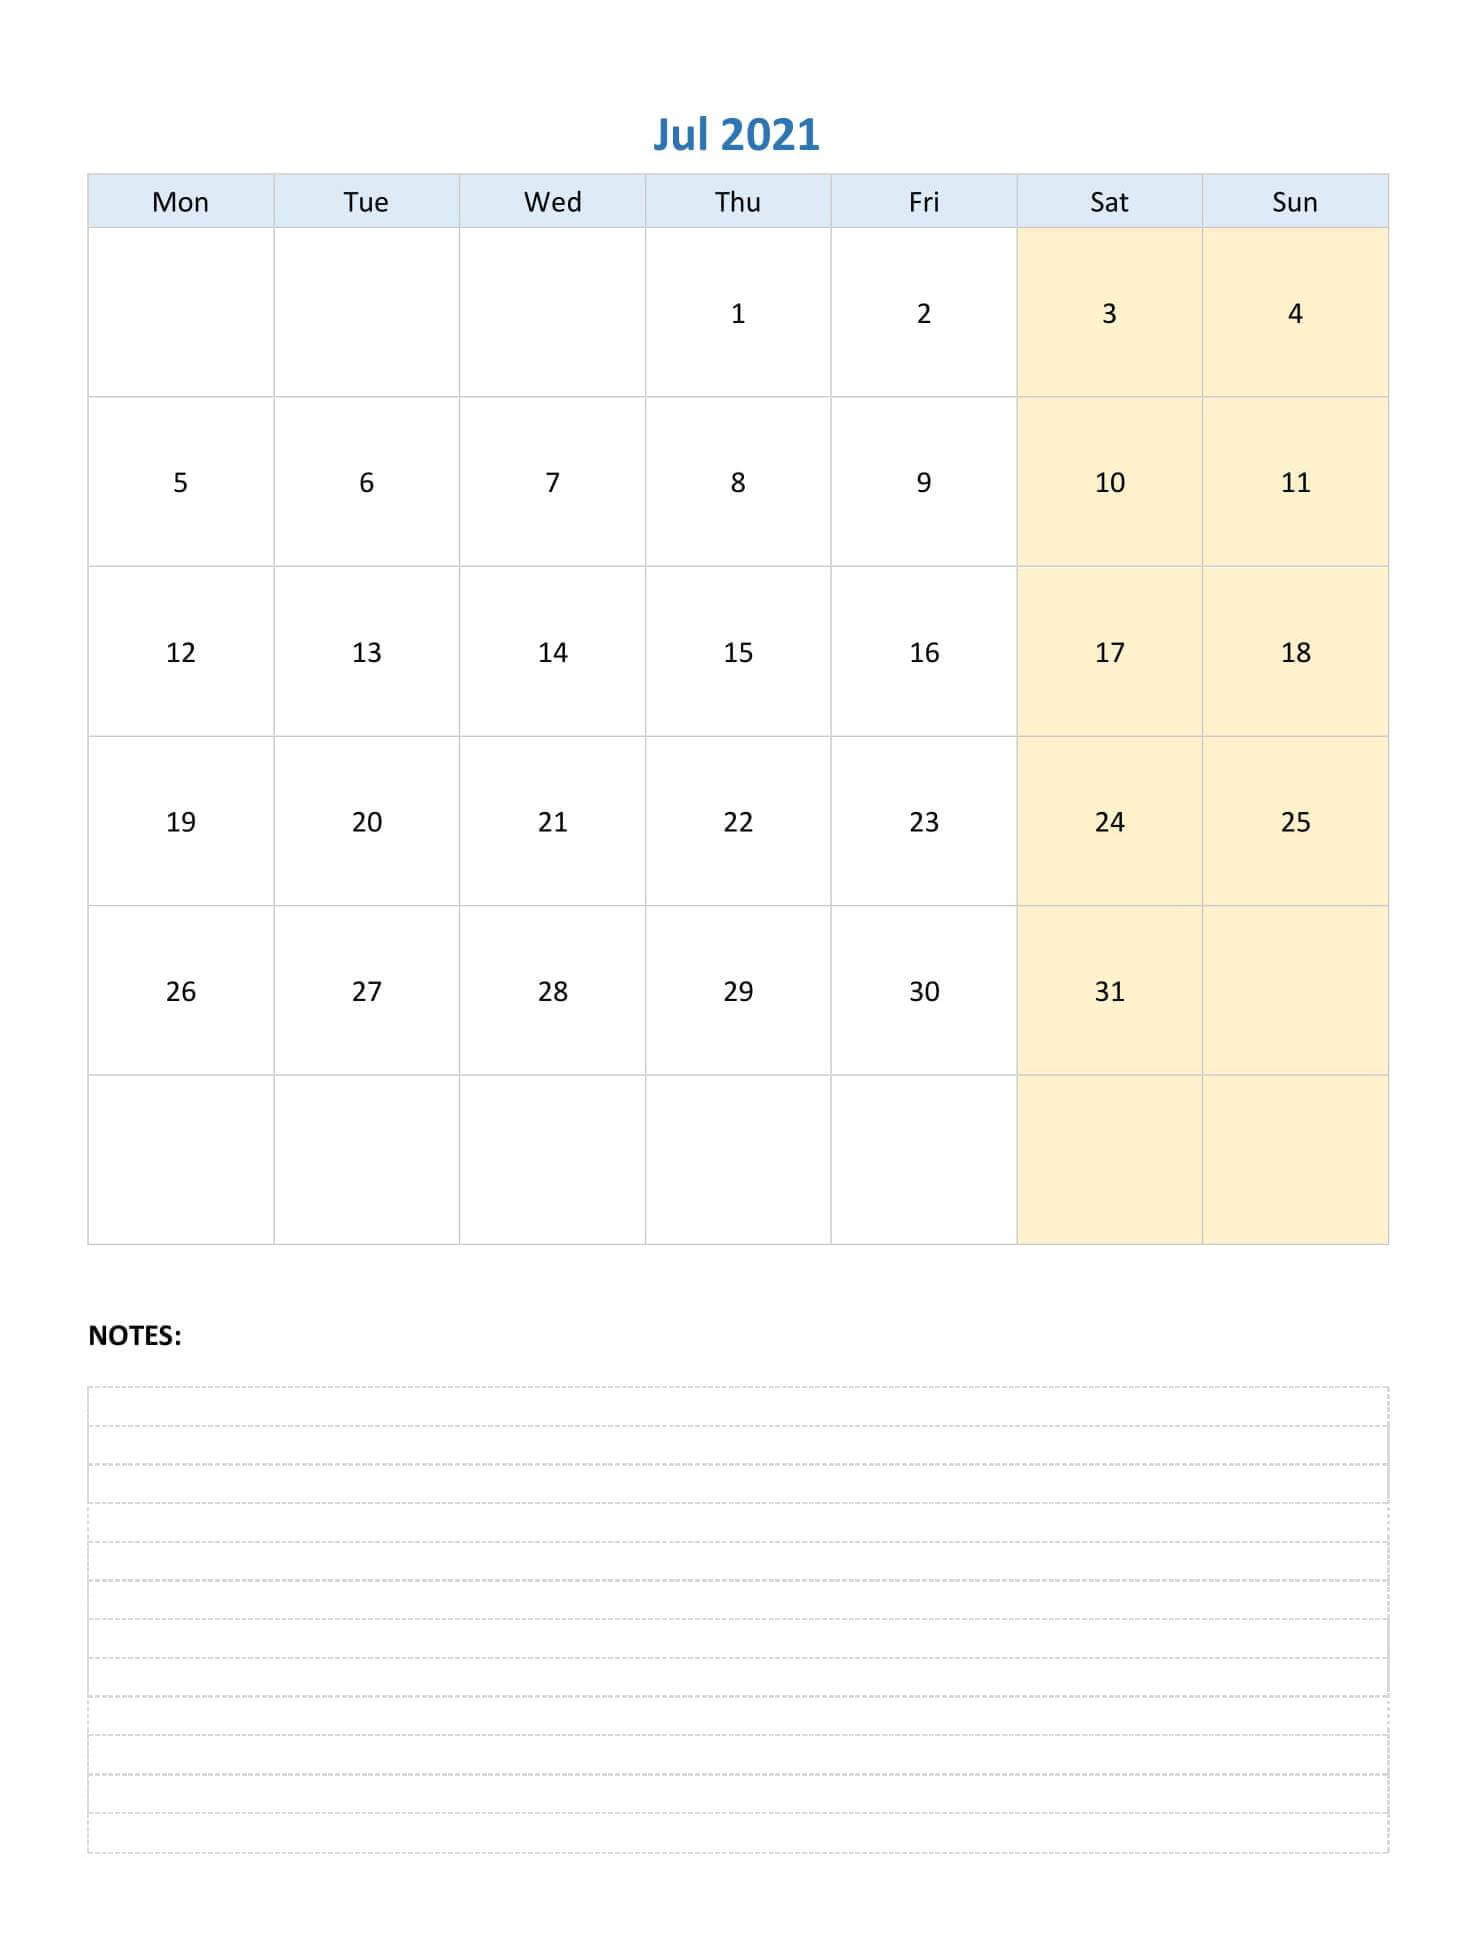 Print July Calendar 2021 With Notes